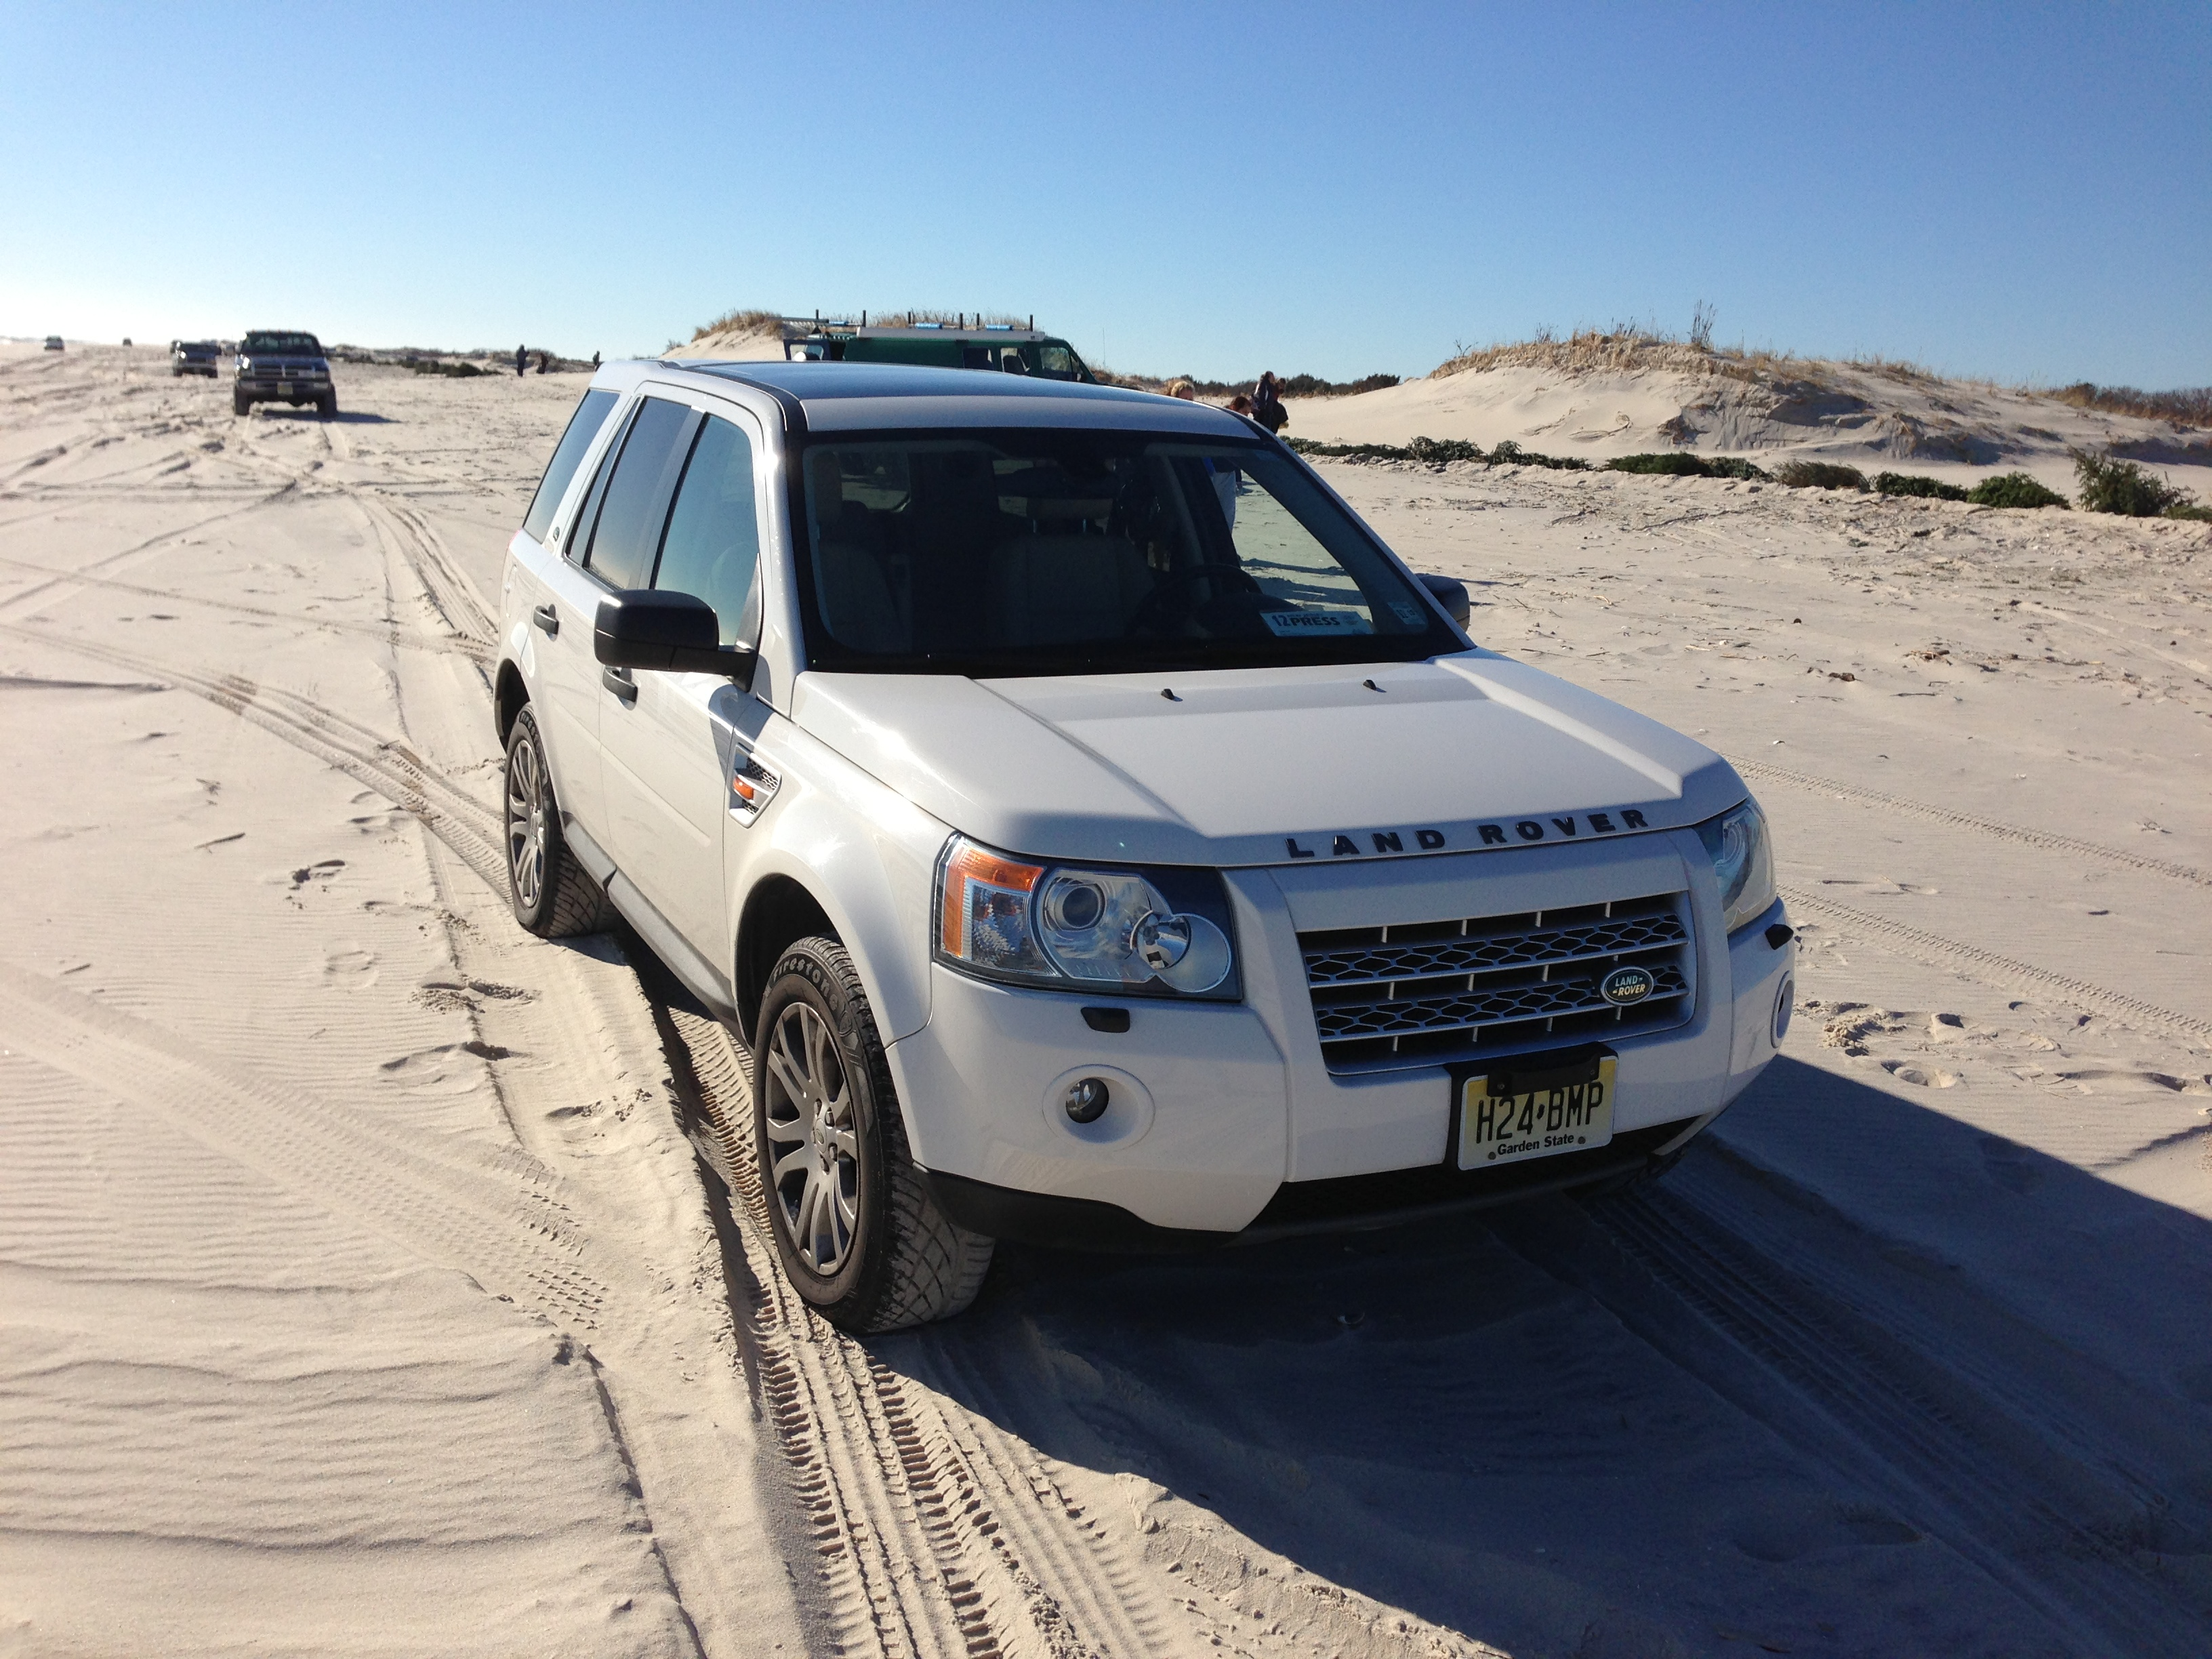 A beach buggy at Island Beach State Park. (Photo: Daniel Nee)